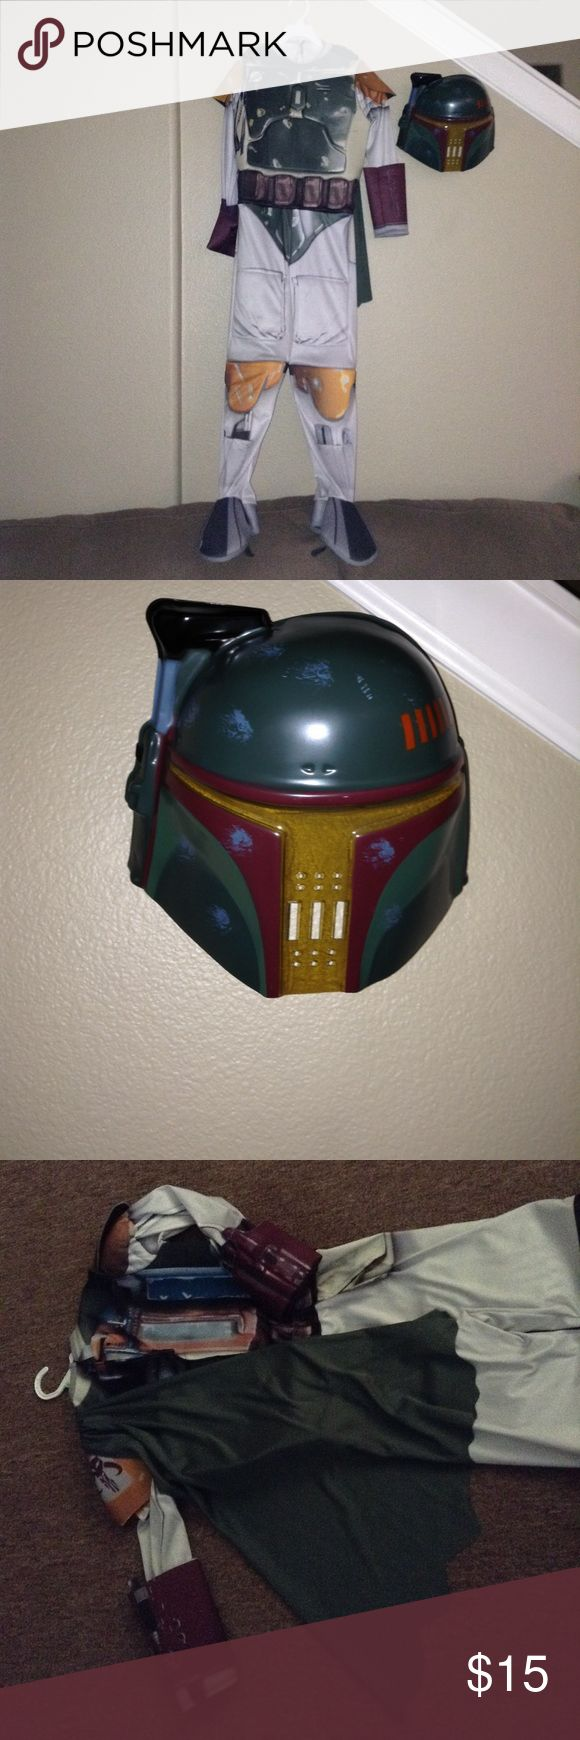 Boba Fett costume Worn once, Star Wars Boba Fett costume. Comes with mask and side cape. No damage, like new condition! Rubie's Costumes Halloween